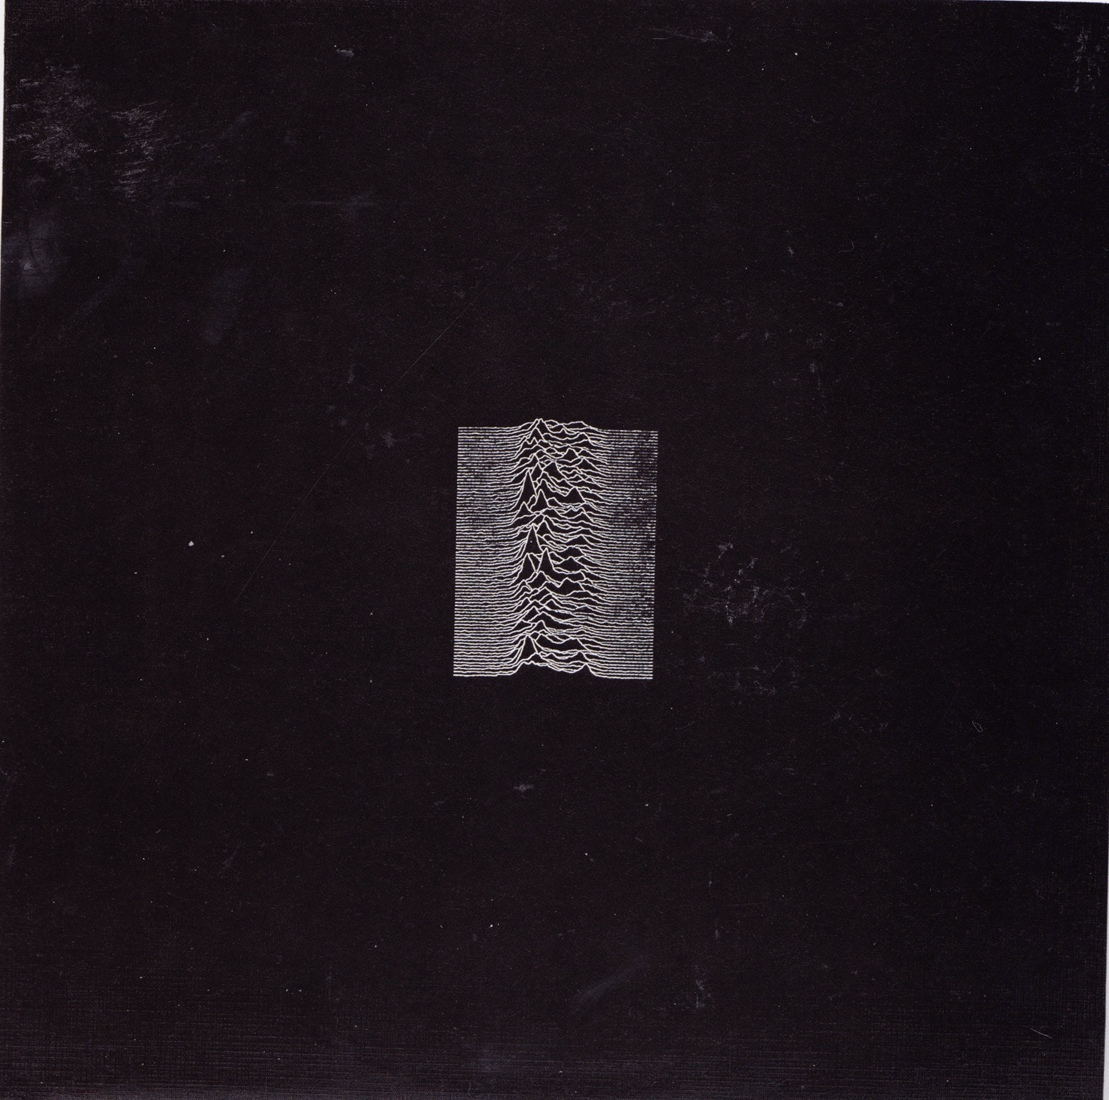 Peter Saville, Fac 10, Joy Division, UNknown pleasures, 1979